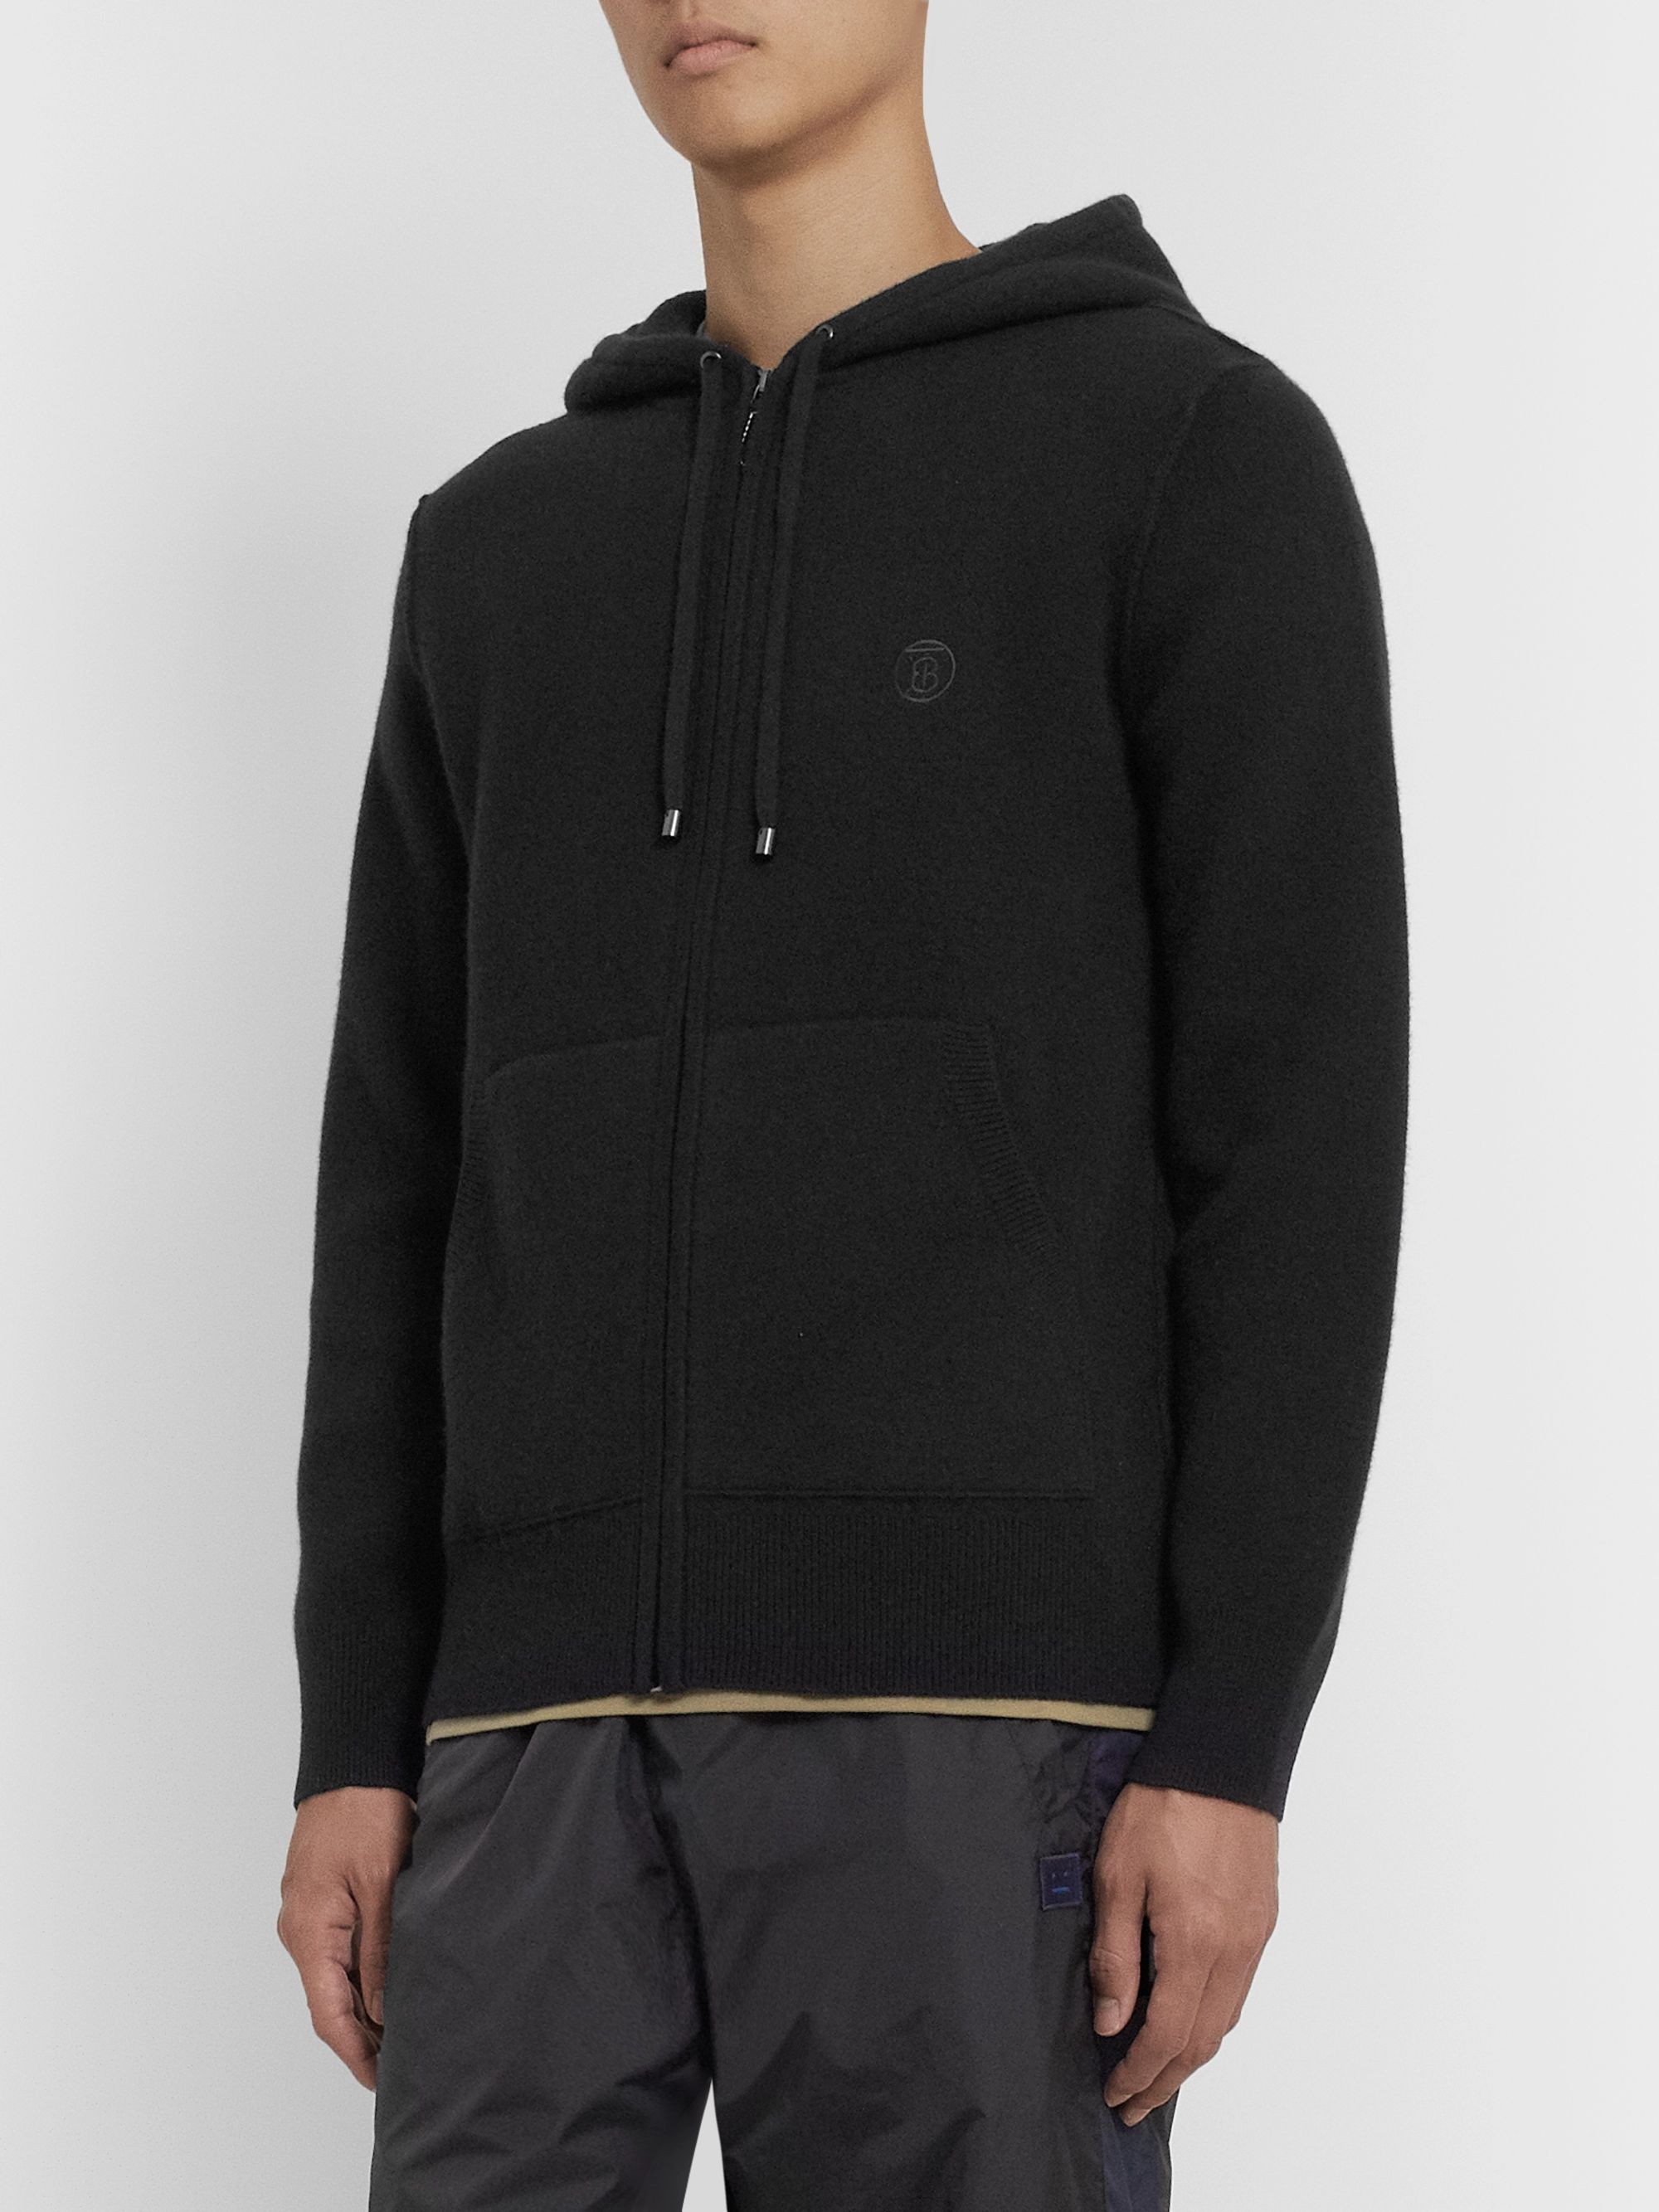 Burberry Cashmere-Blend Zip-Up Hoodie